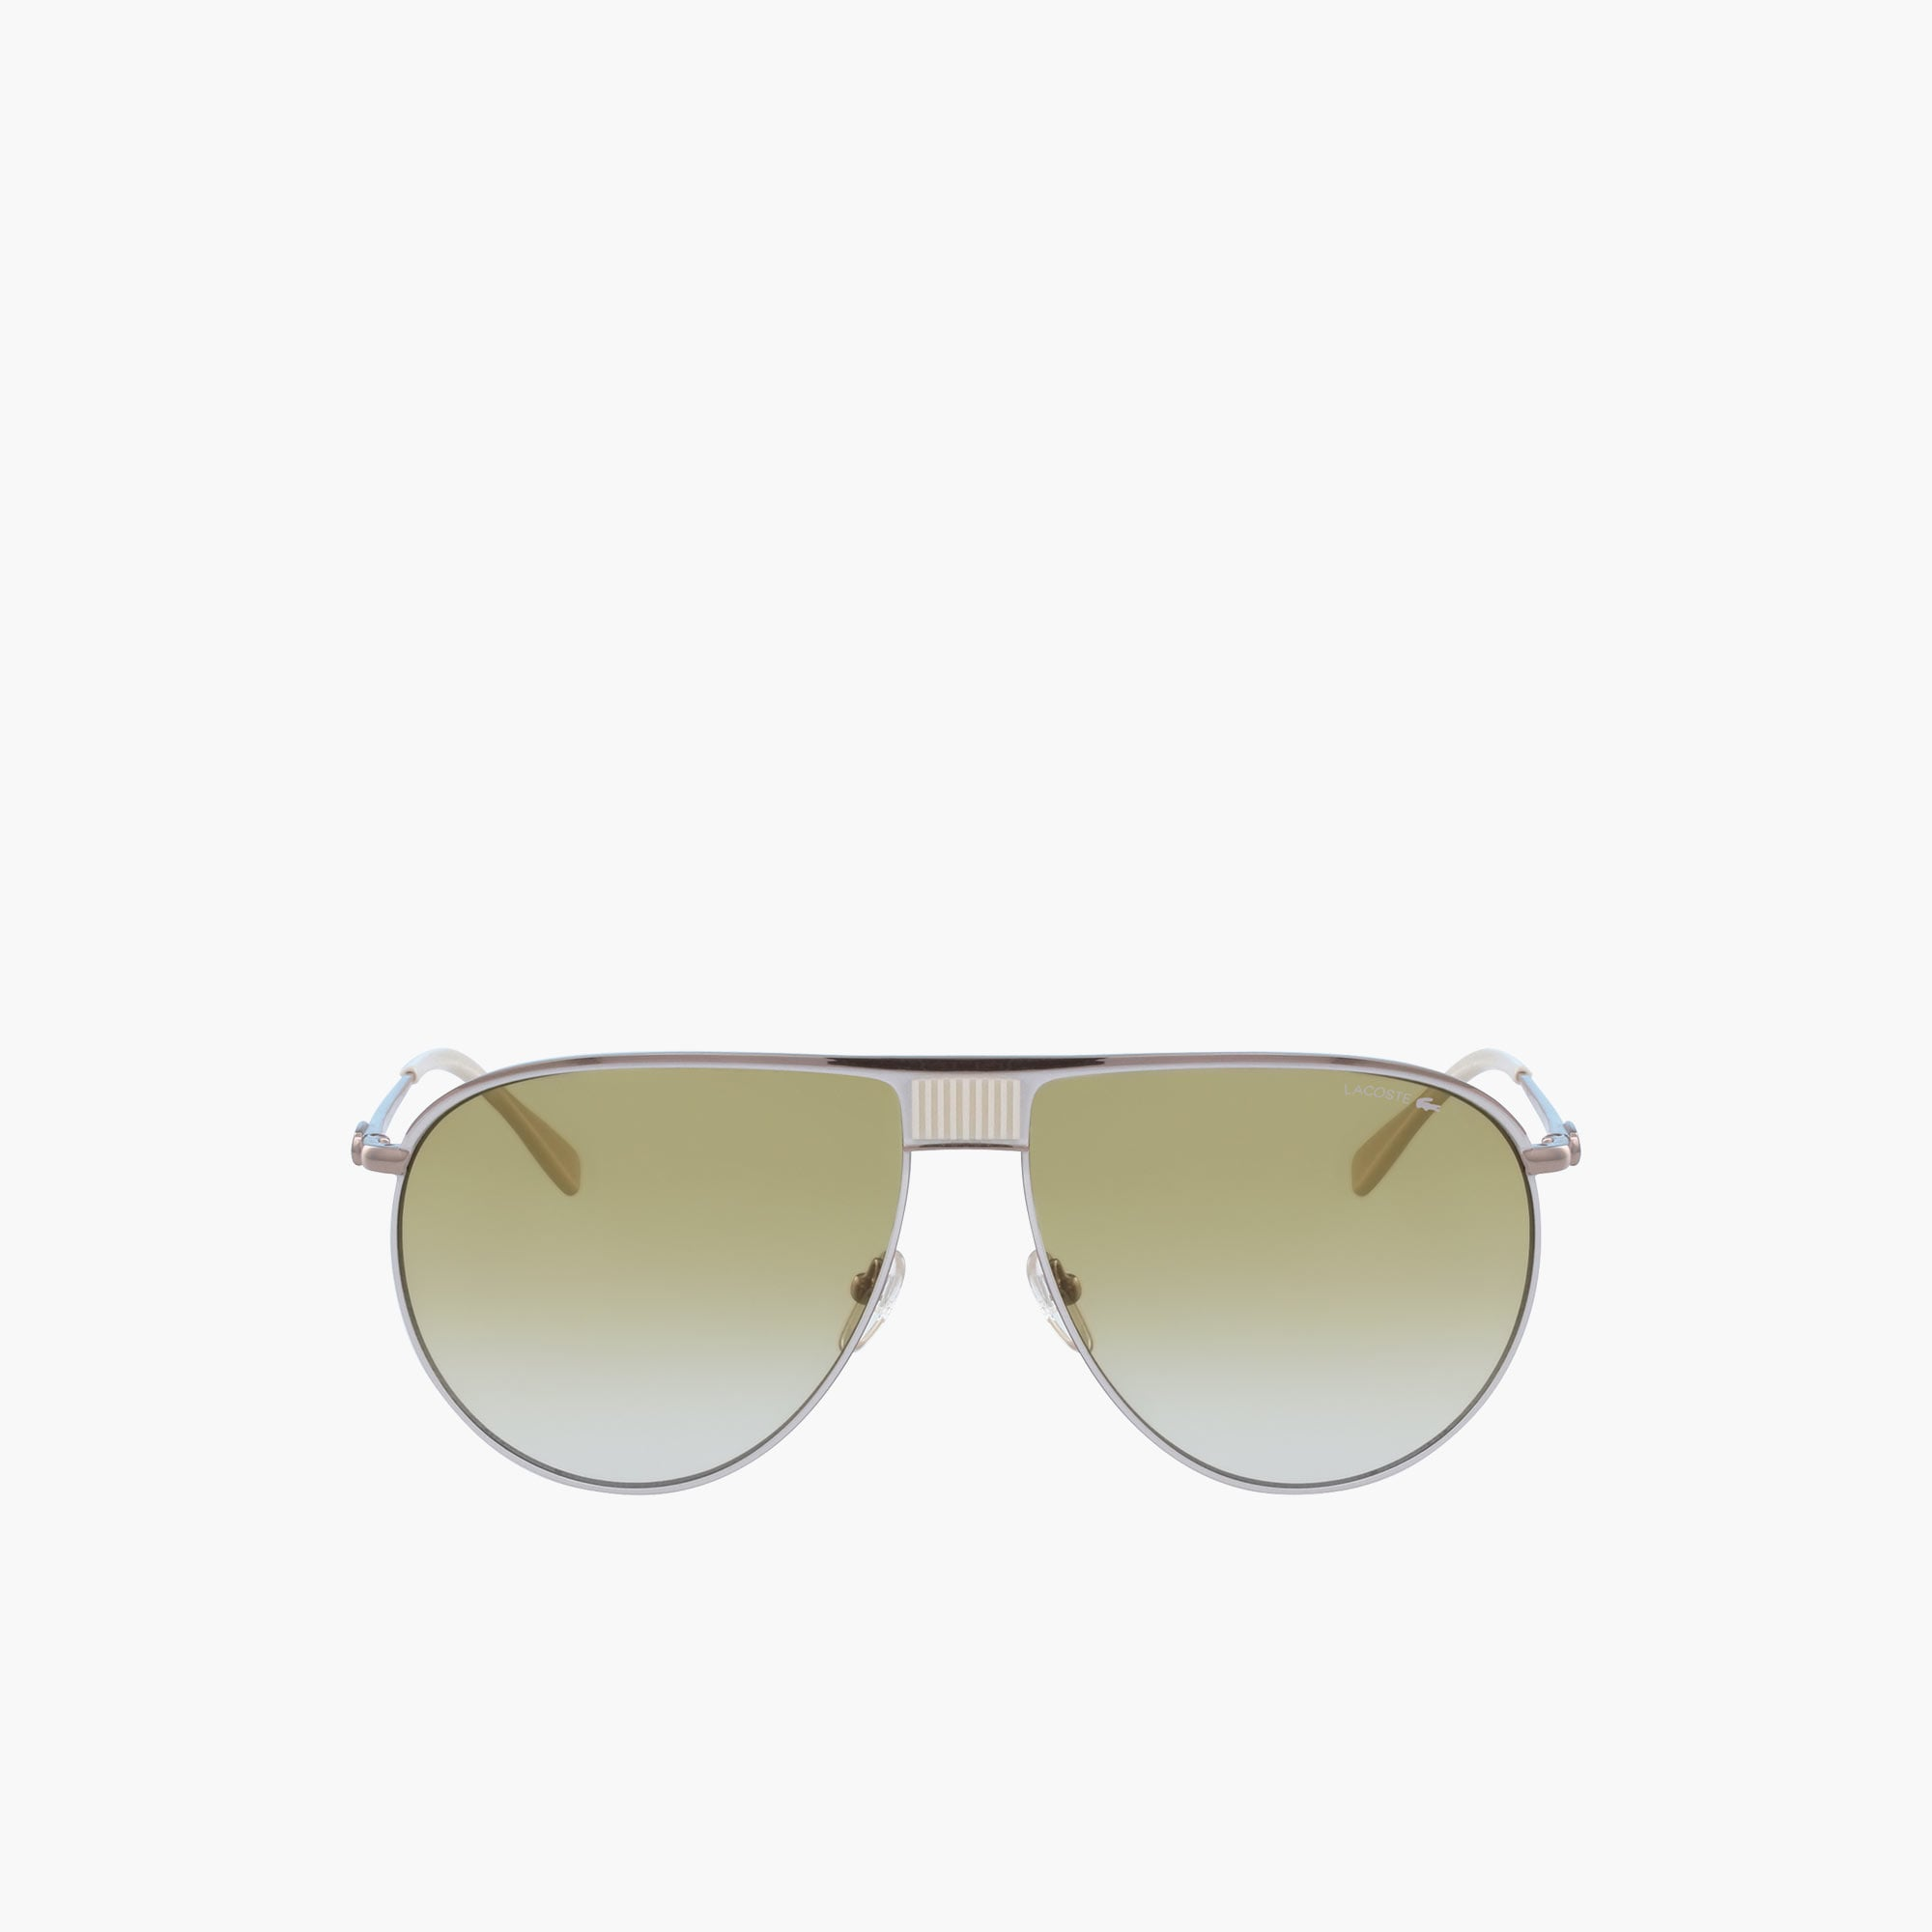 Unisex Fashion Show Sunglasses in Metal